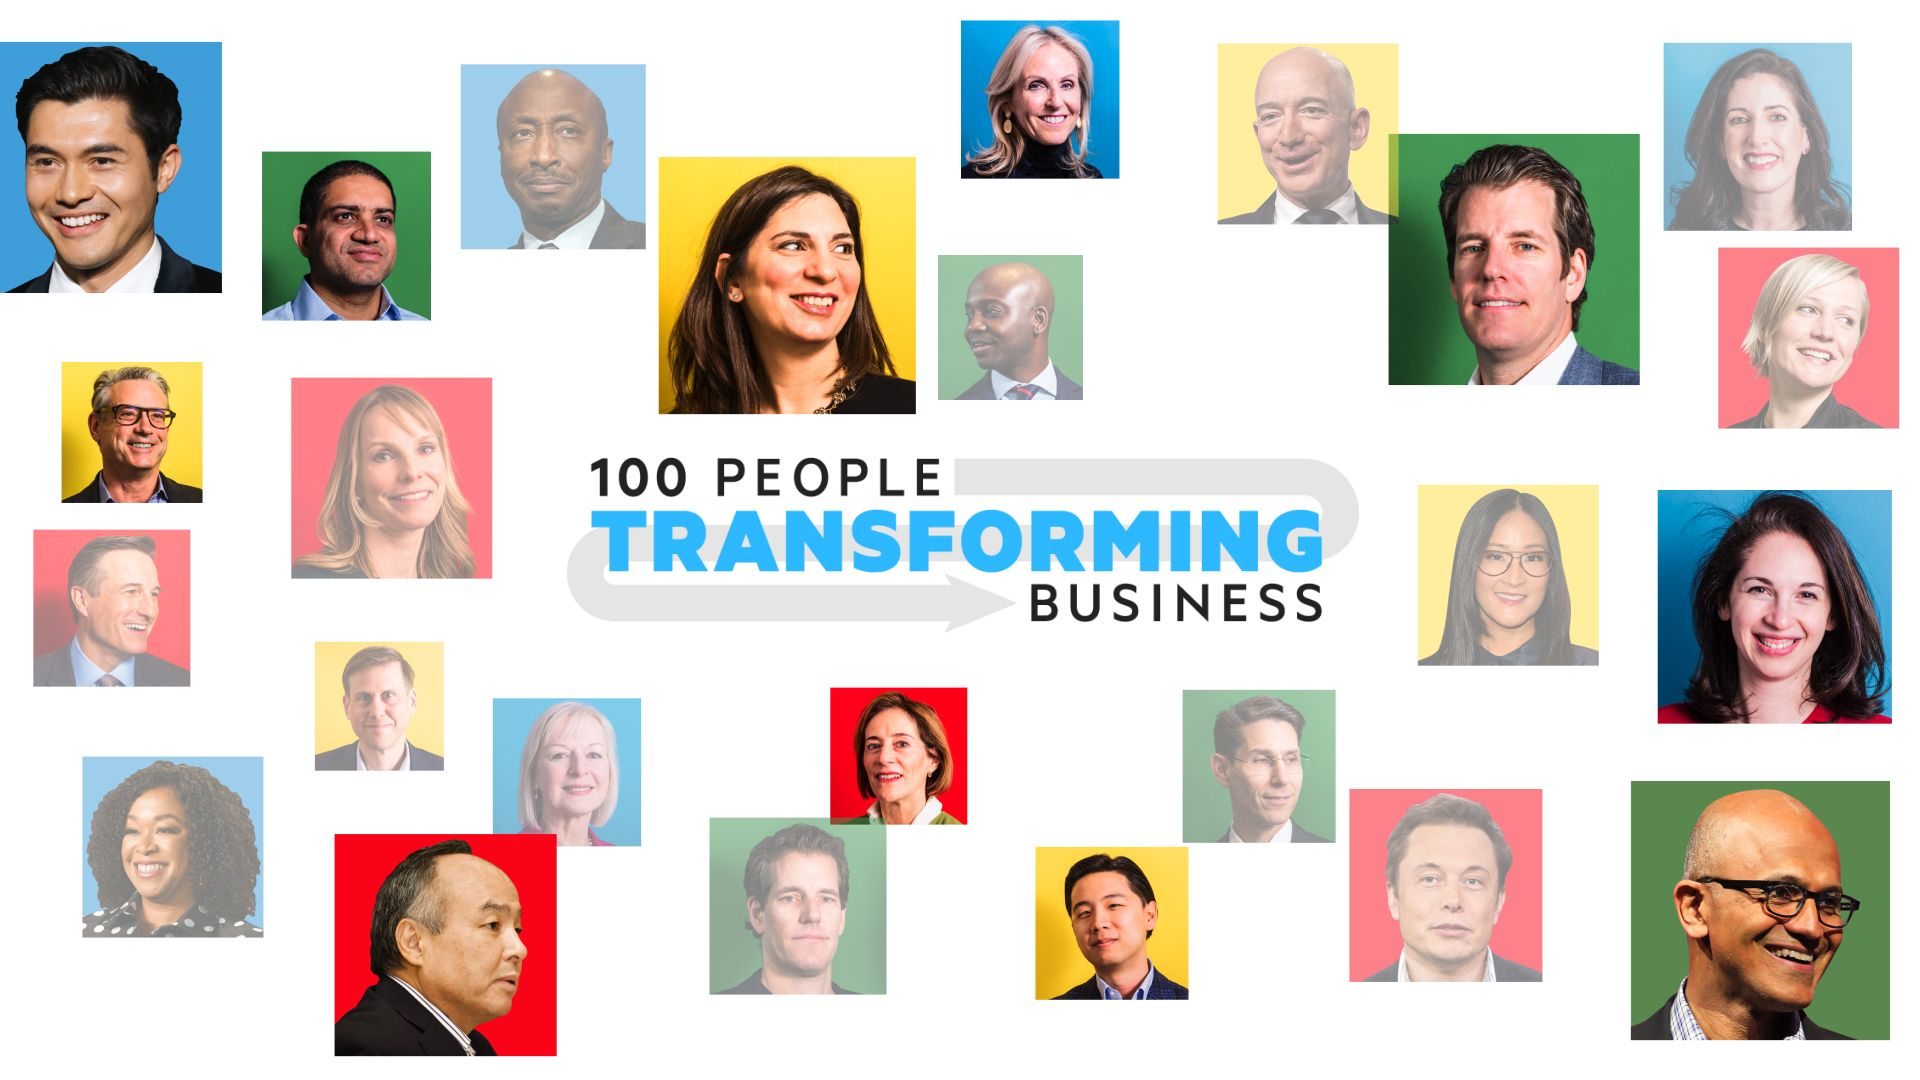 The 100 people transforming the world of business